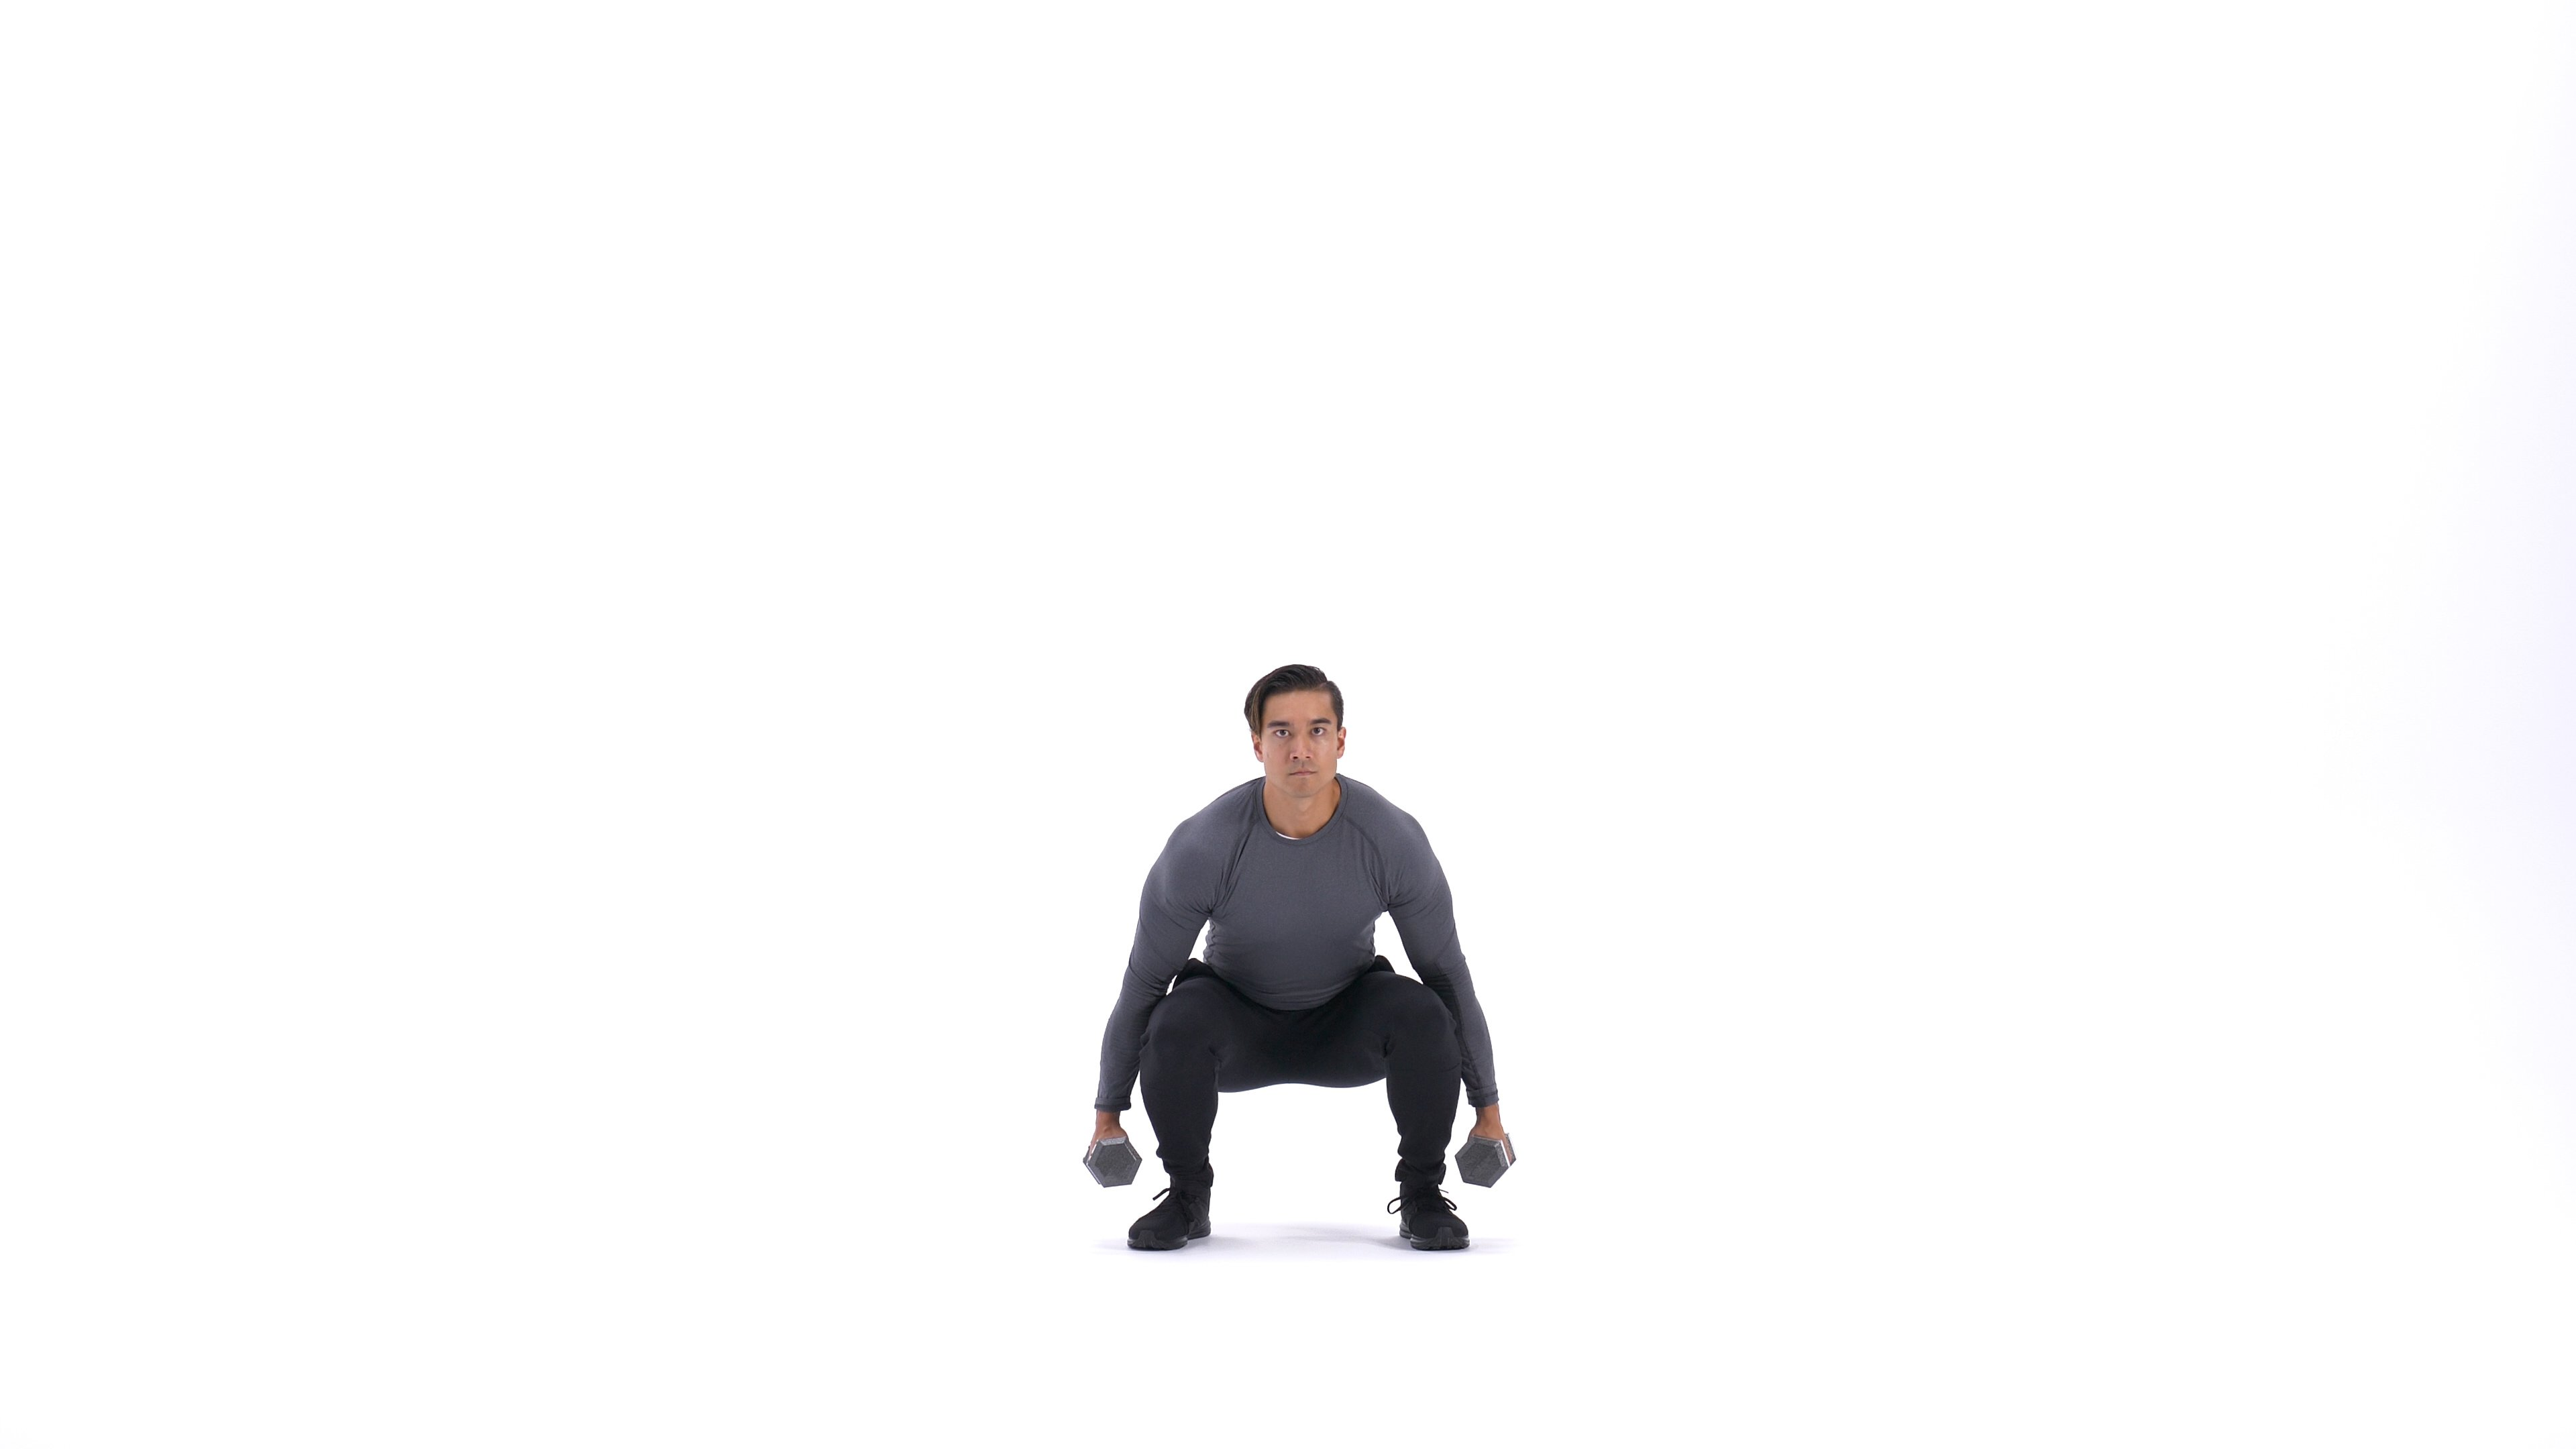 Dumbbell squat image